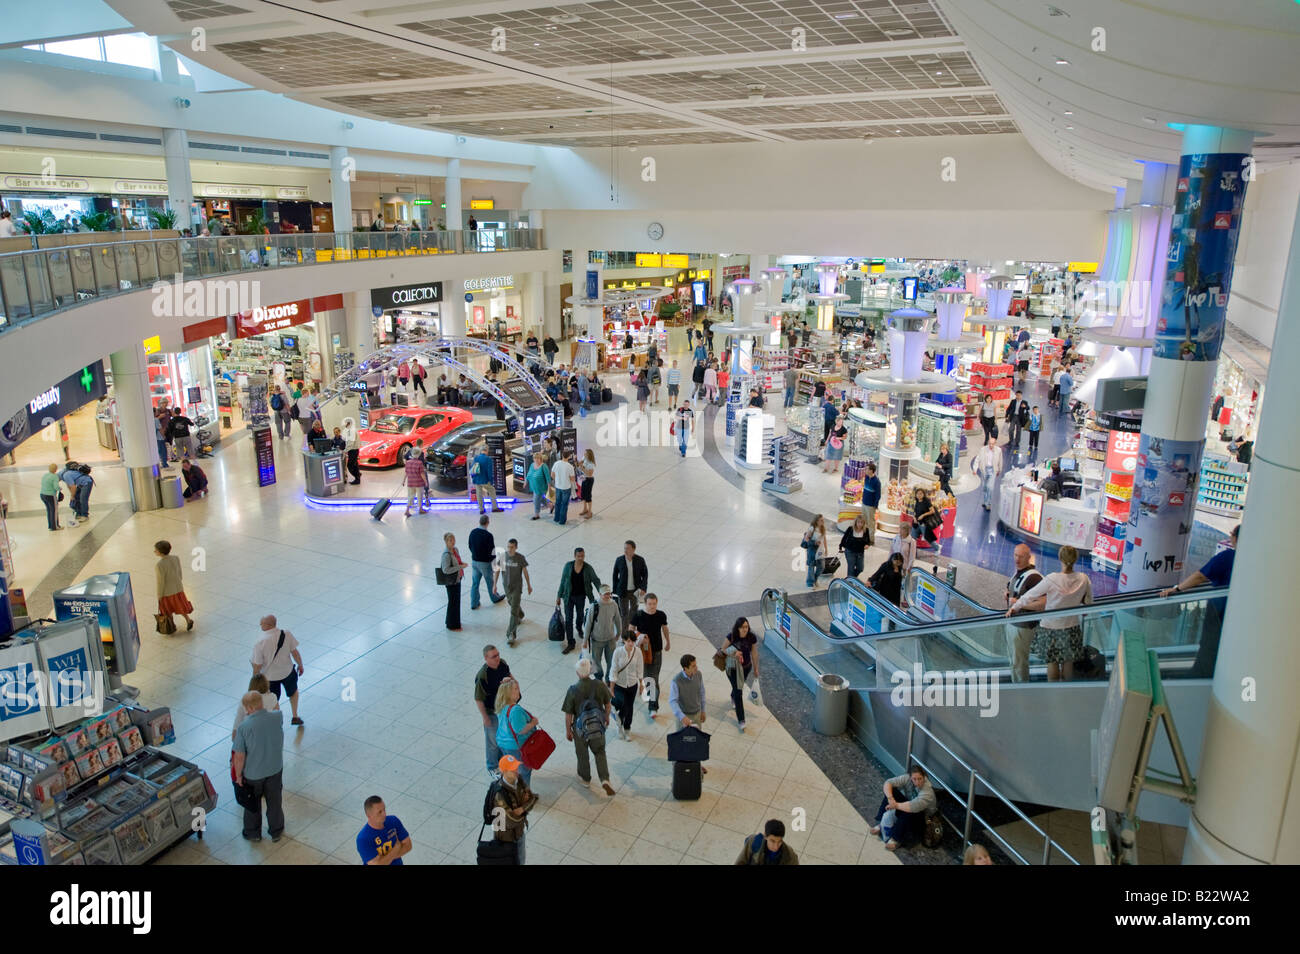 Gatwick Airport, North Terminal, Departures, Shopping Mall. Stock Photo